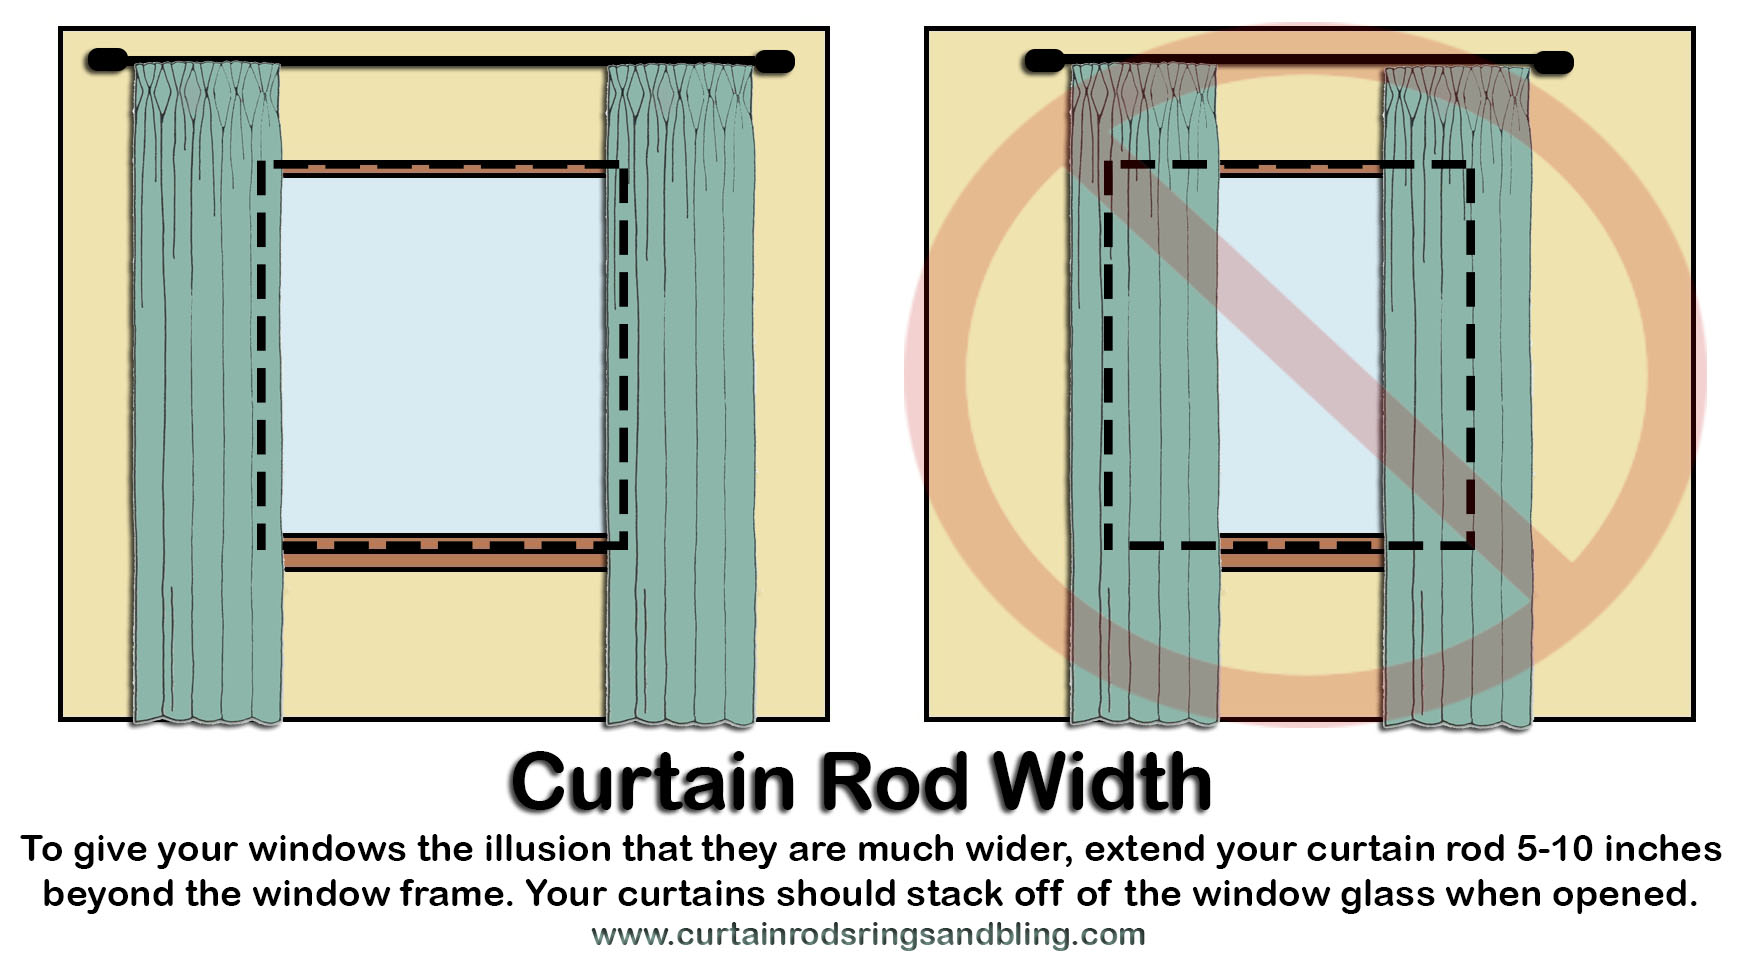 how to hang up curtain rods mount curtain rods width abda abda window fashions 8674